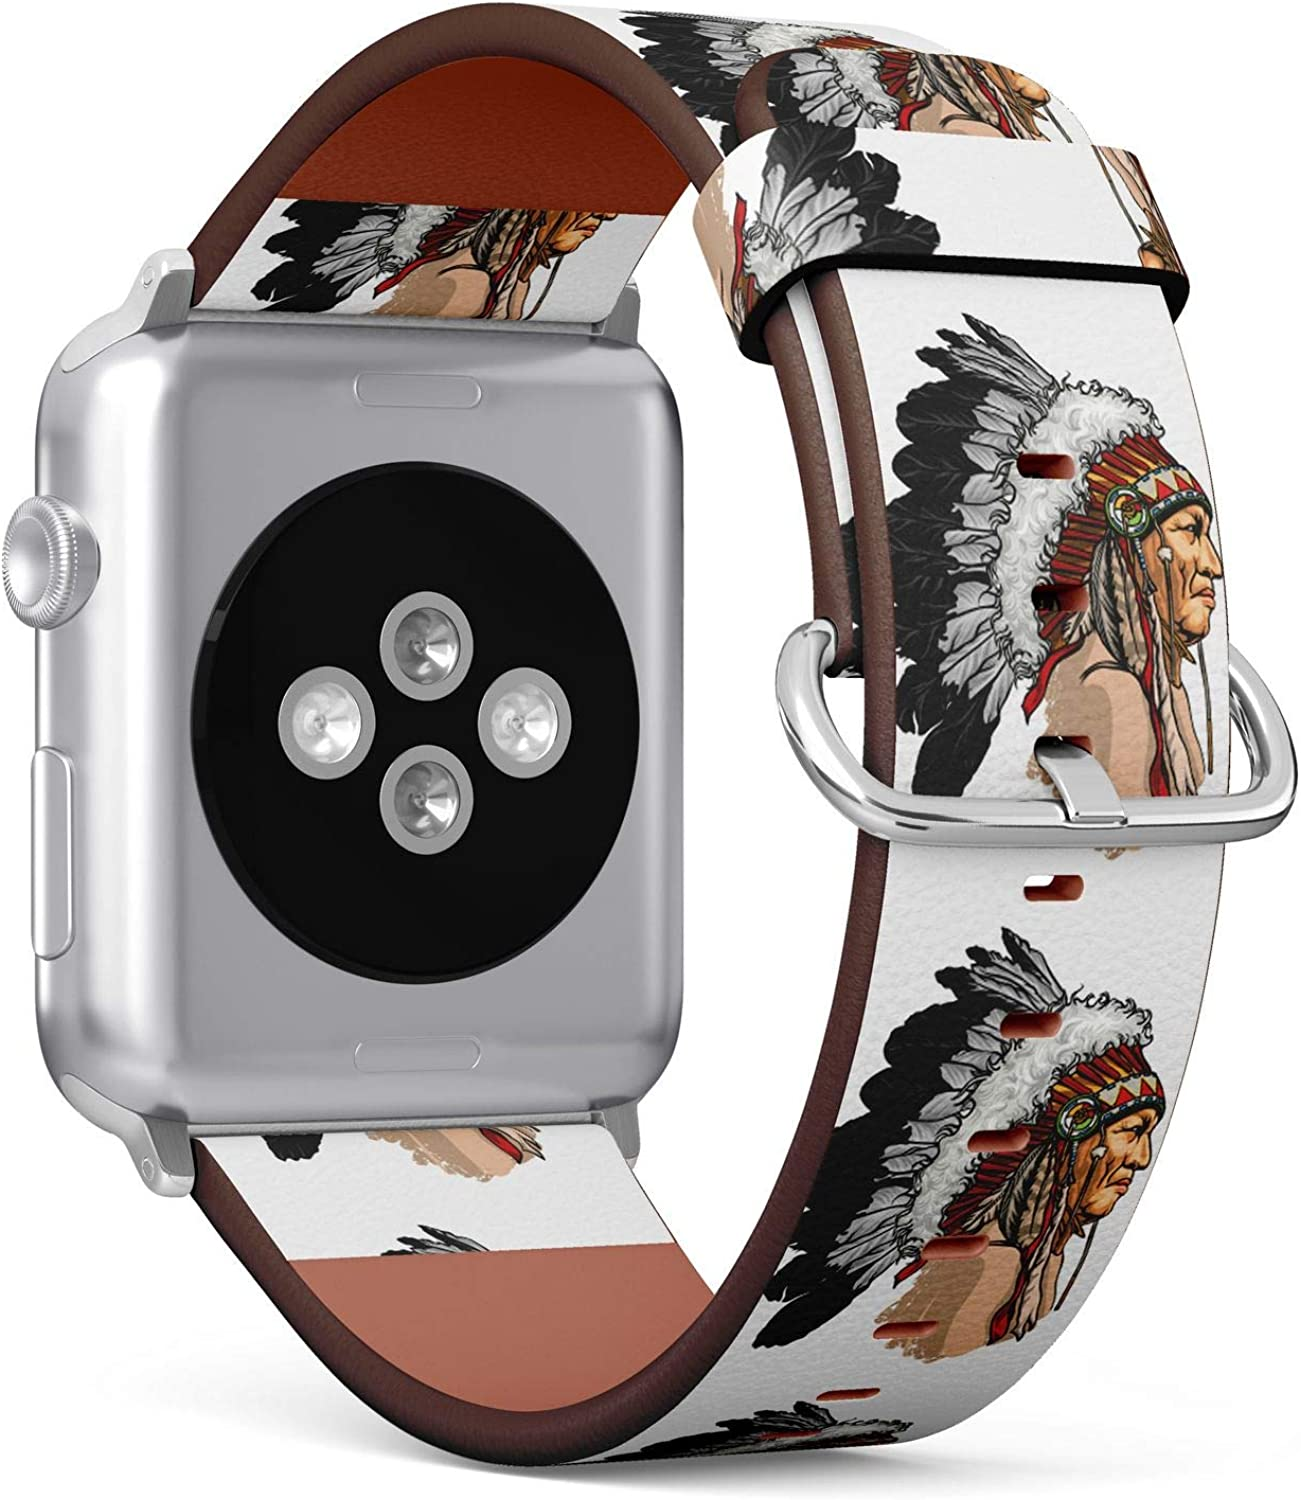 (Native American Indian Chief with Headdress) Patterned Leather Wristband Strap for Apple Watch Series 4/3/2/1 gen,Replacement for iWatch 38mm / 40mm Bands